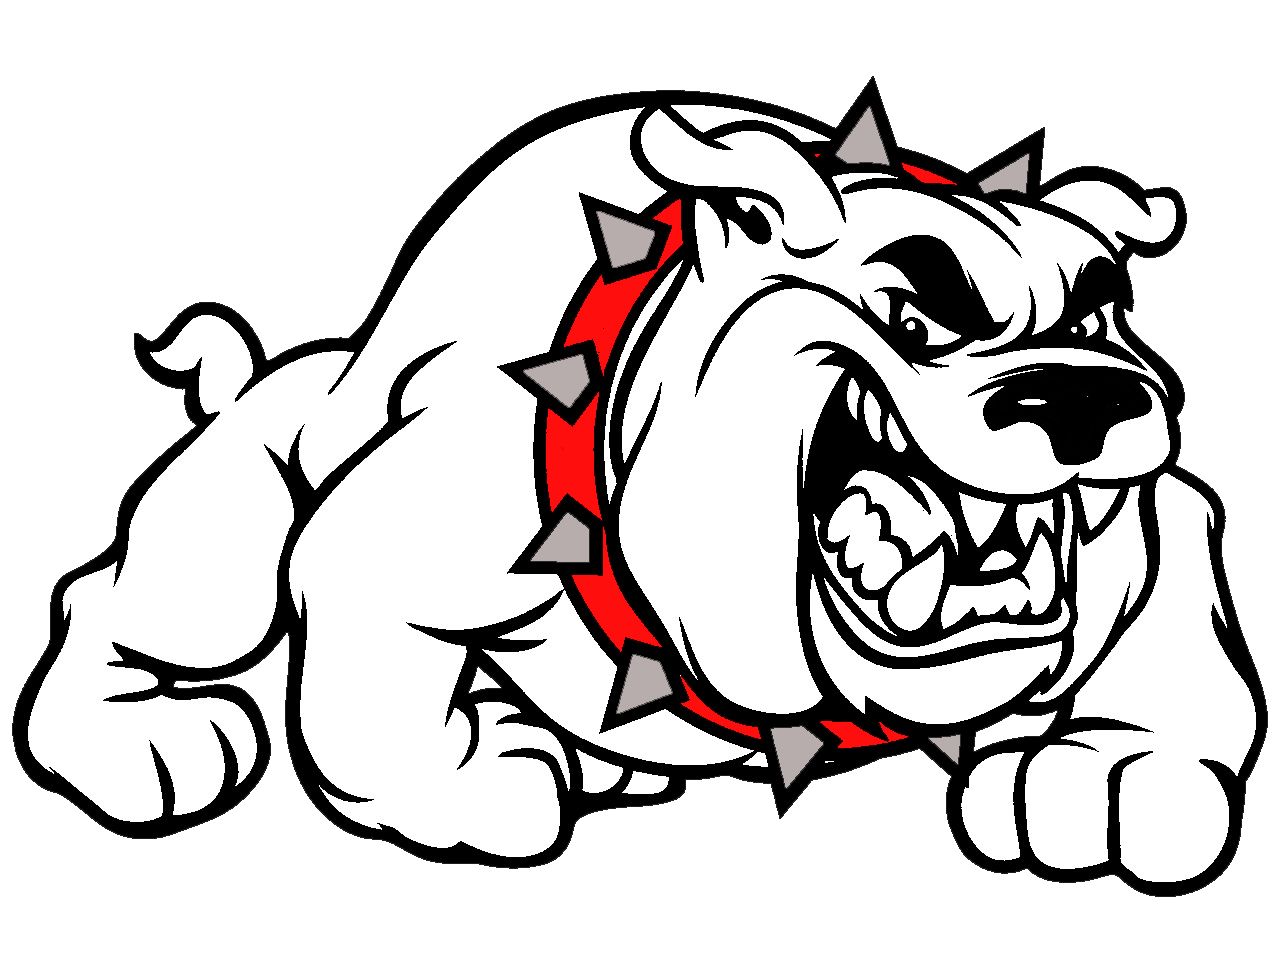 Bulldog Cartoon Drawing rdY5Nvt6EURywhC8cmr4yKEal0n sJGoRGt8qV69Quk on georgia bulldogs football logo